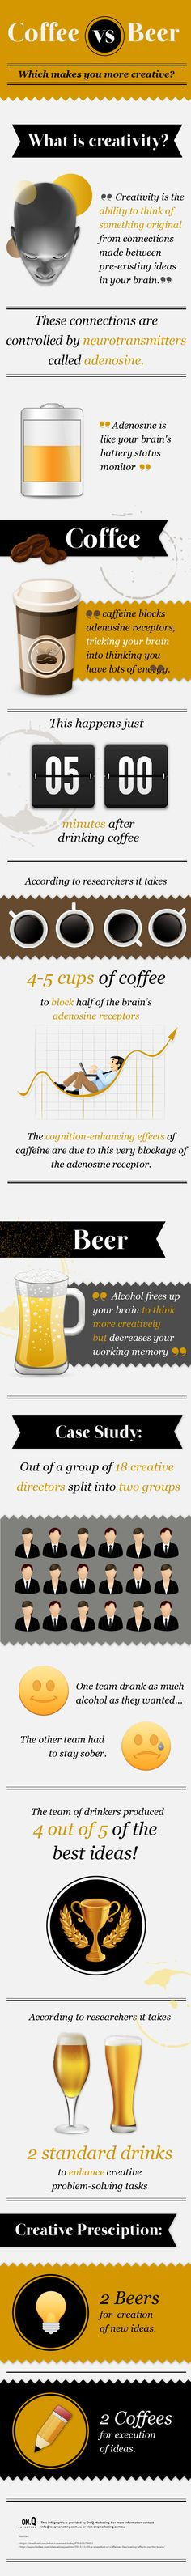 "Health Infographics - Beer and Coffee Infographic. Beer: Which Makes You More Creative? Beer"" Infographic Proves Drinking Is Awesome. Beer Infographic, Creative Infographic, Health Infographics, Beer Brewing, Home Brewing, Coffee Facts, Creative Coffee, Craft Quotes, Web Design"